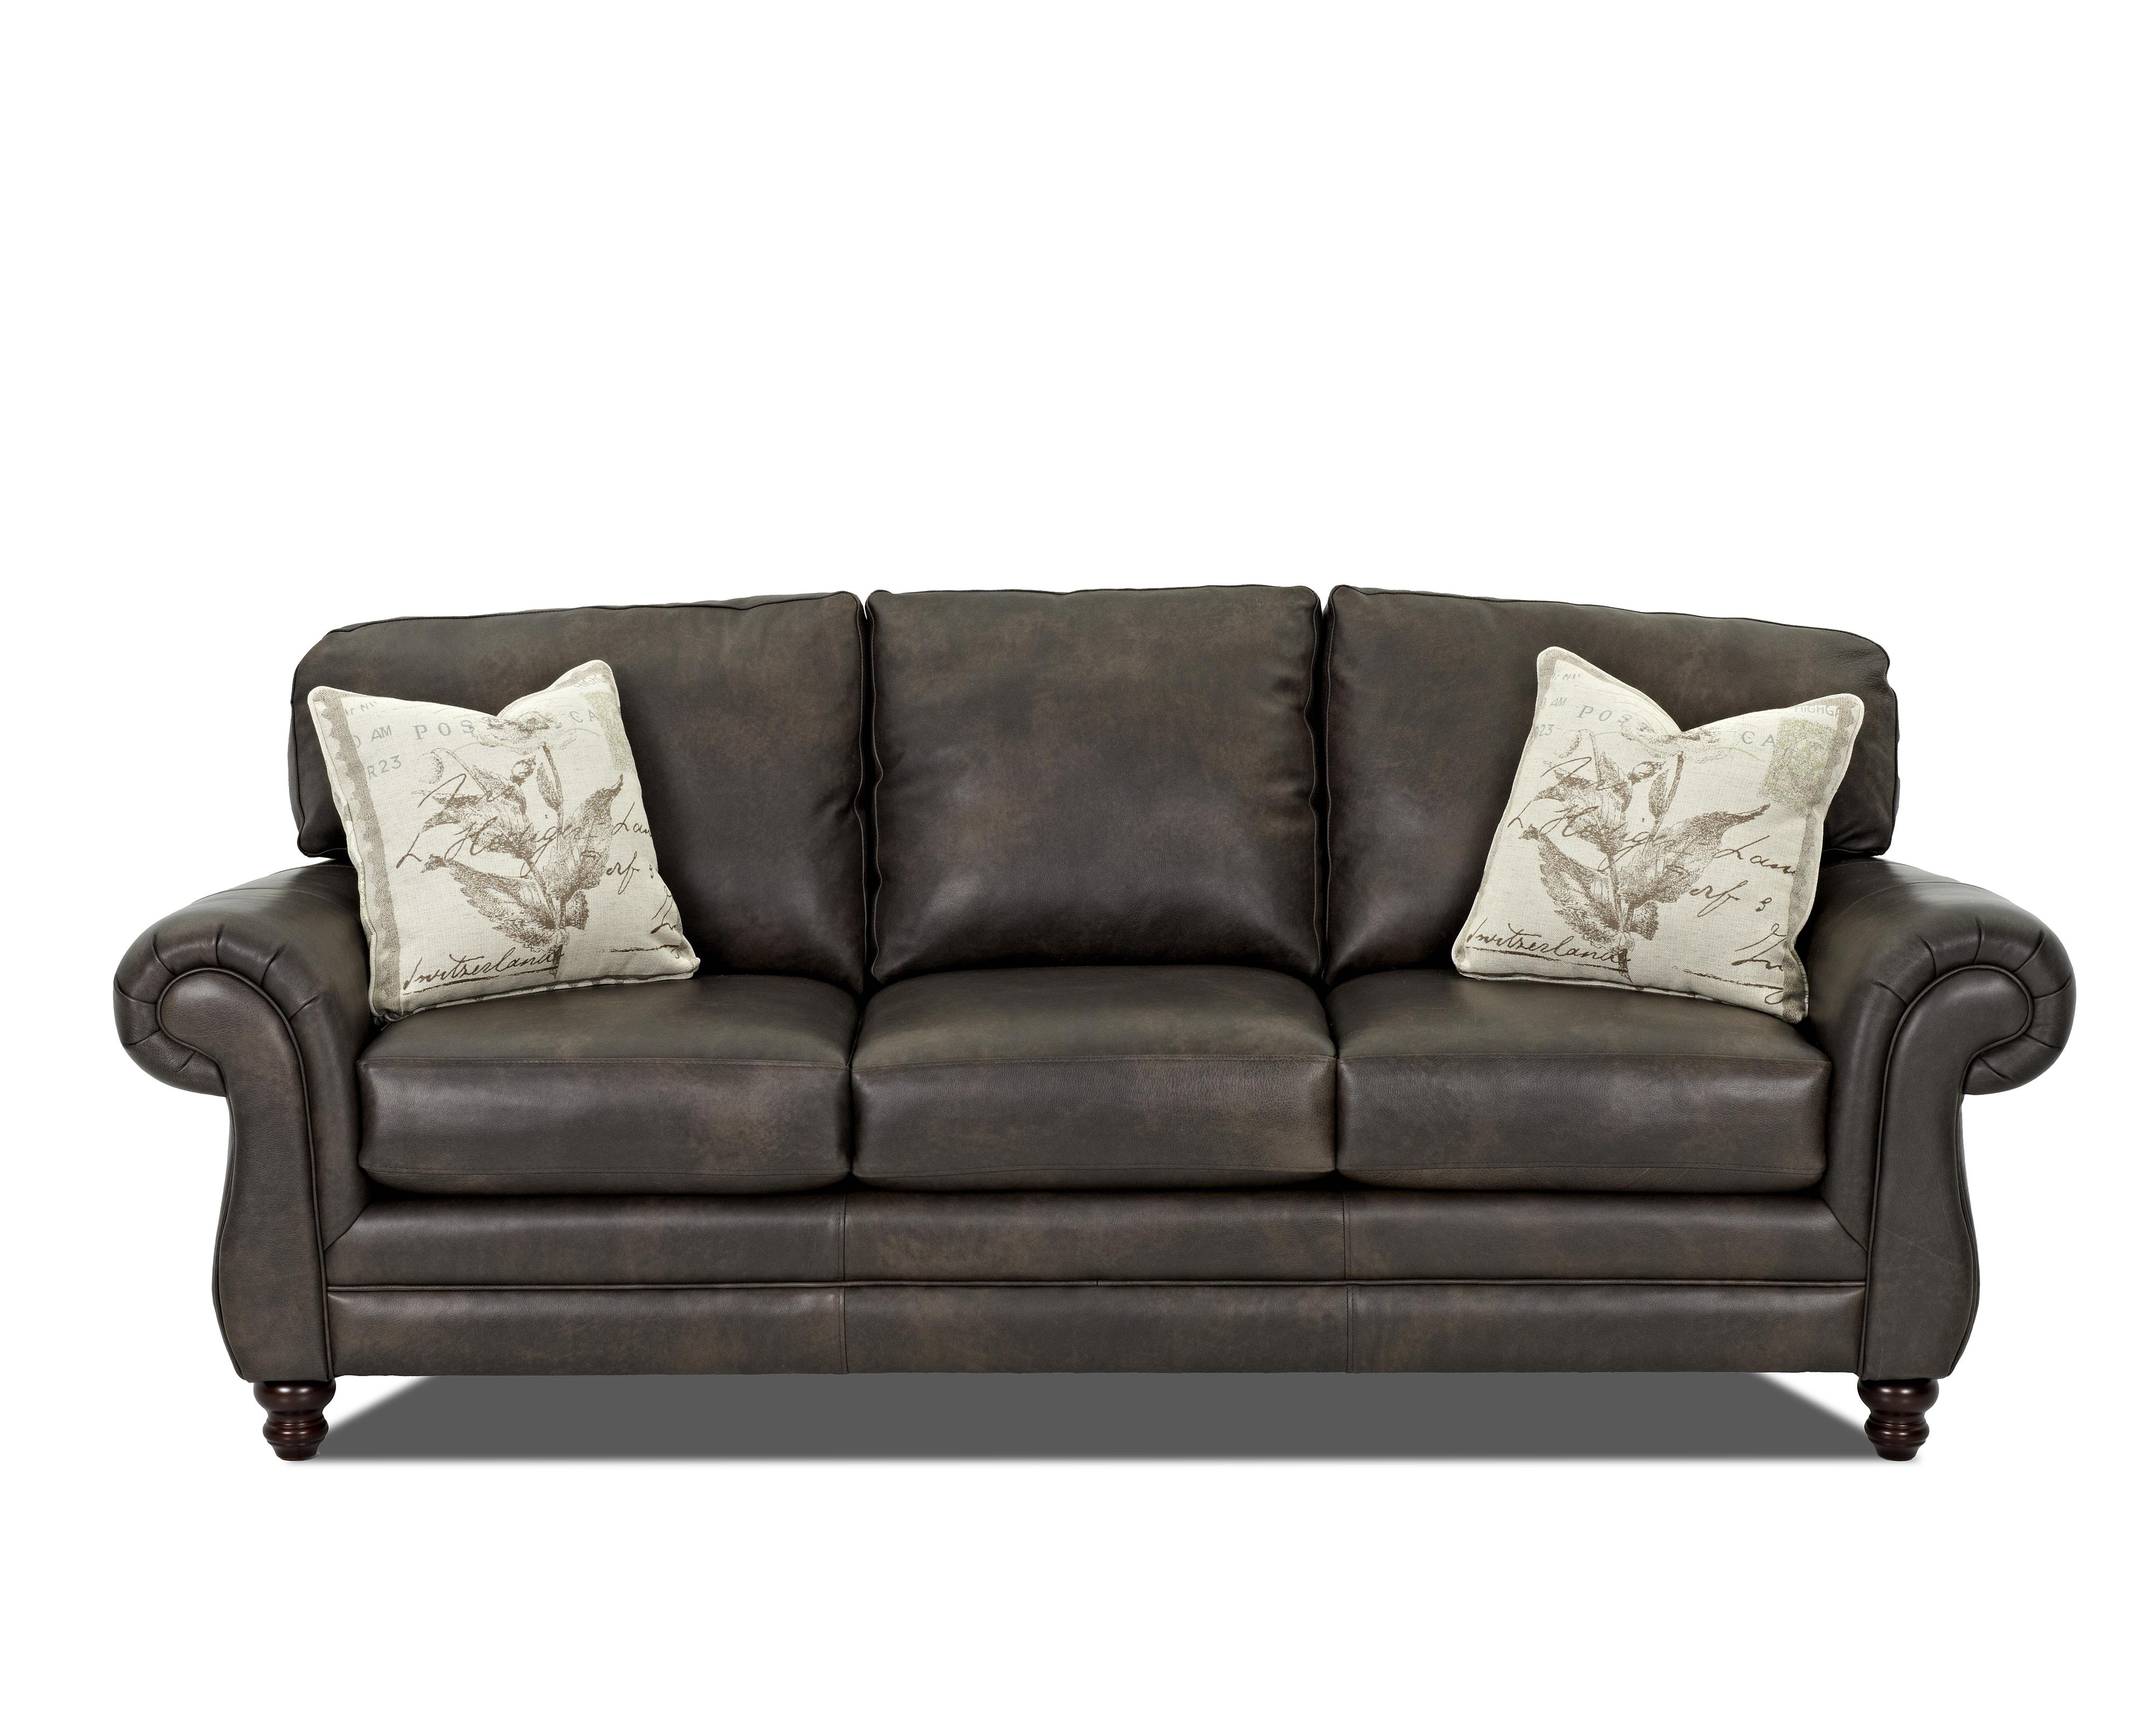 Throw Pillows For Leather Sectional : Klaussner Valiant Leather Sofa with Accent Pillows - Miskelly Furniture - Sofas